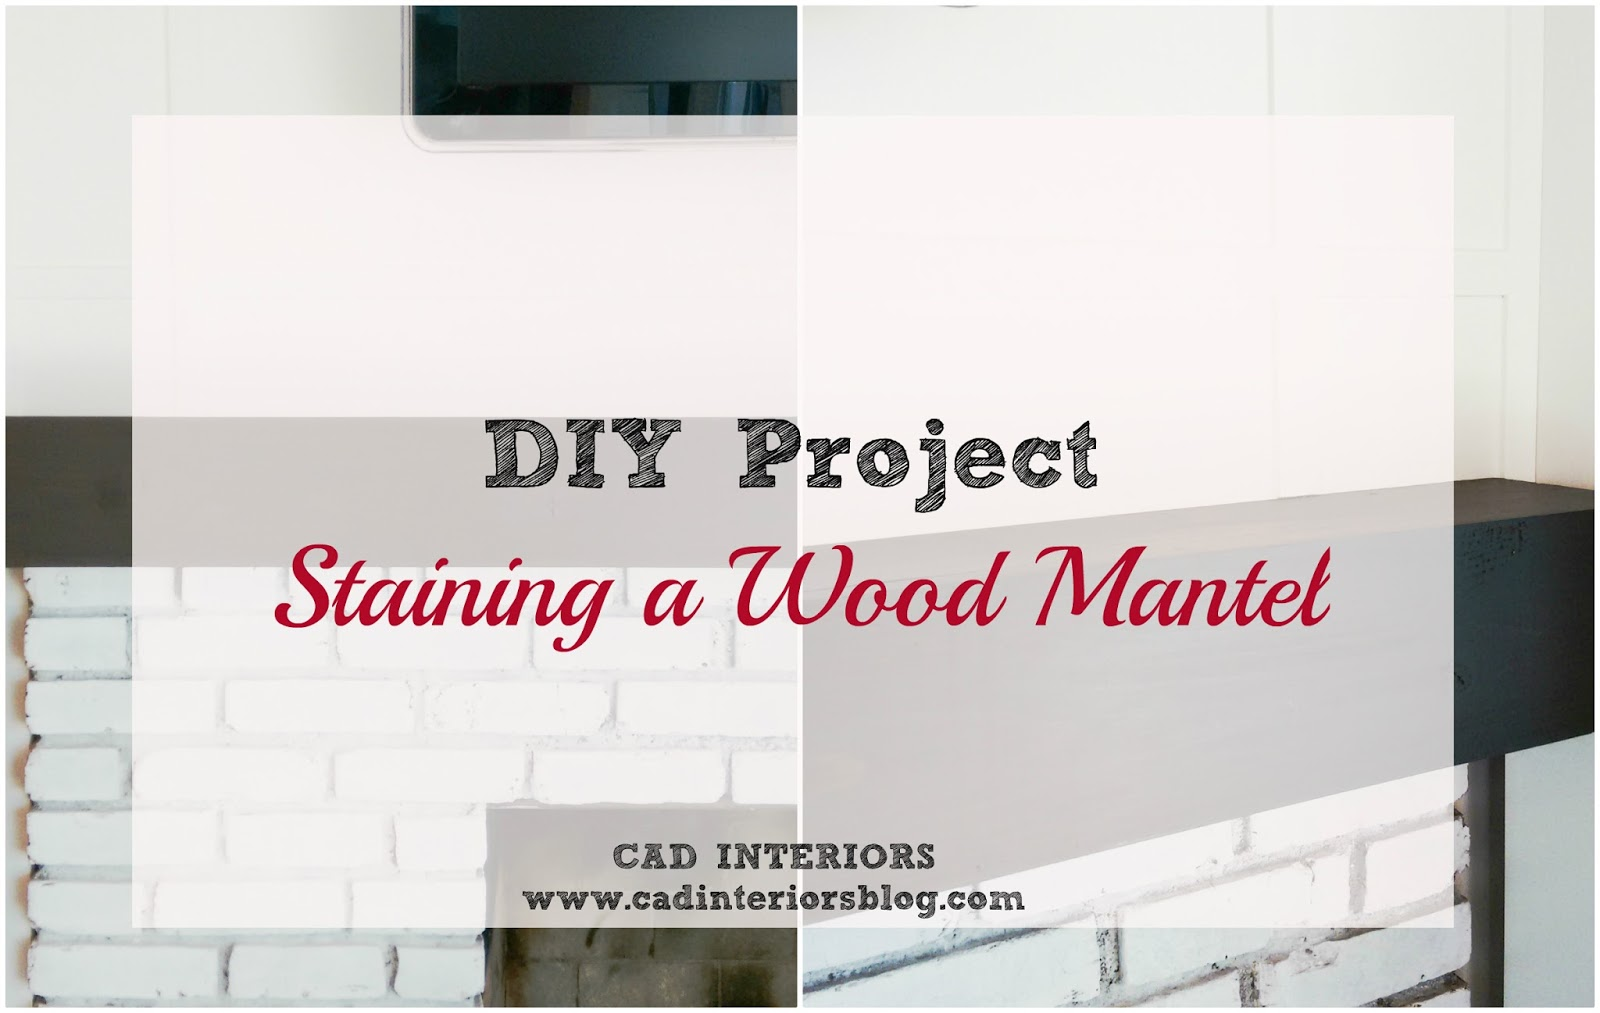 CAD INTERIORS family room remodel fireplace mantel varathane kona diy project home improvement